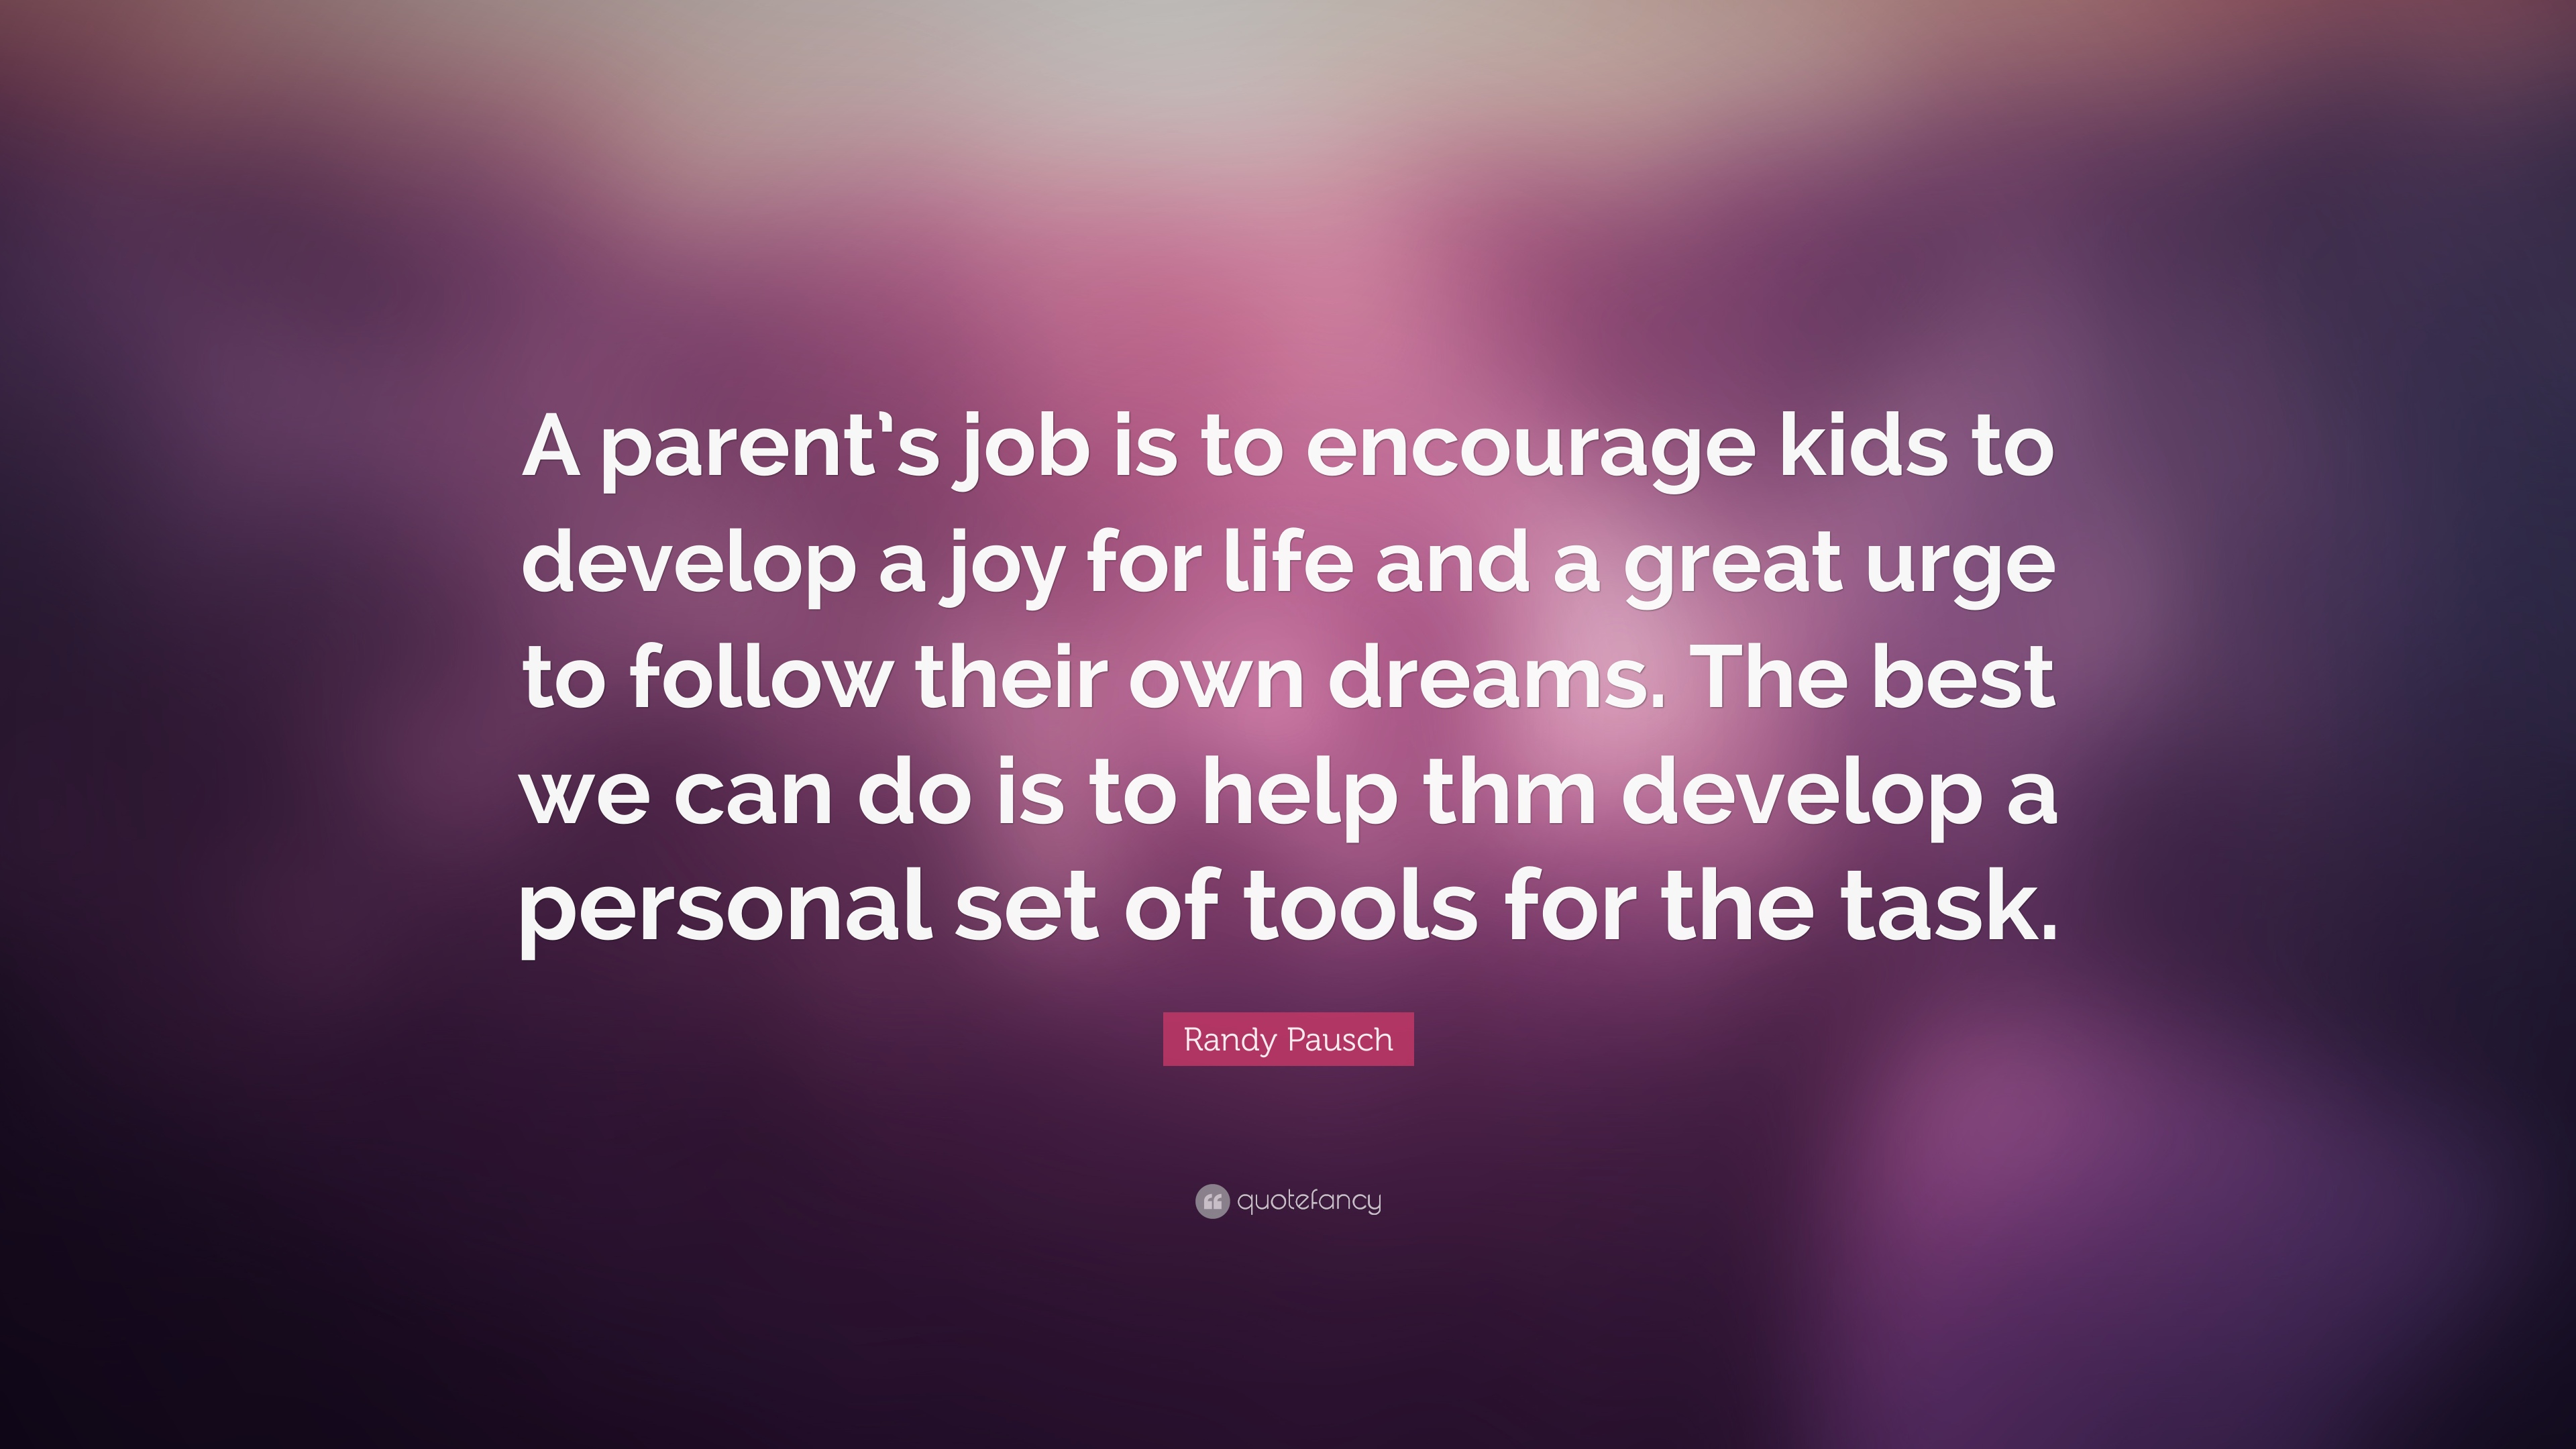 Parents Love Quotes Wallpapers Randy Pausch Quote A Parent S Job Is To Encourage Kids